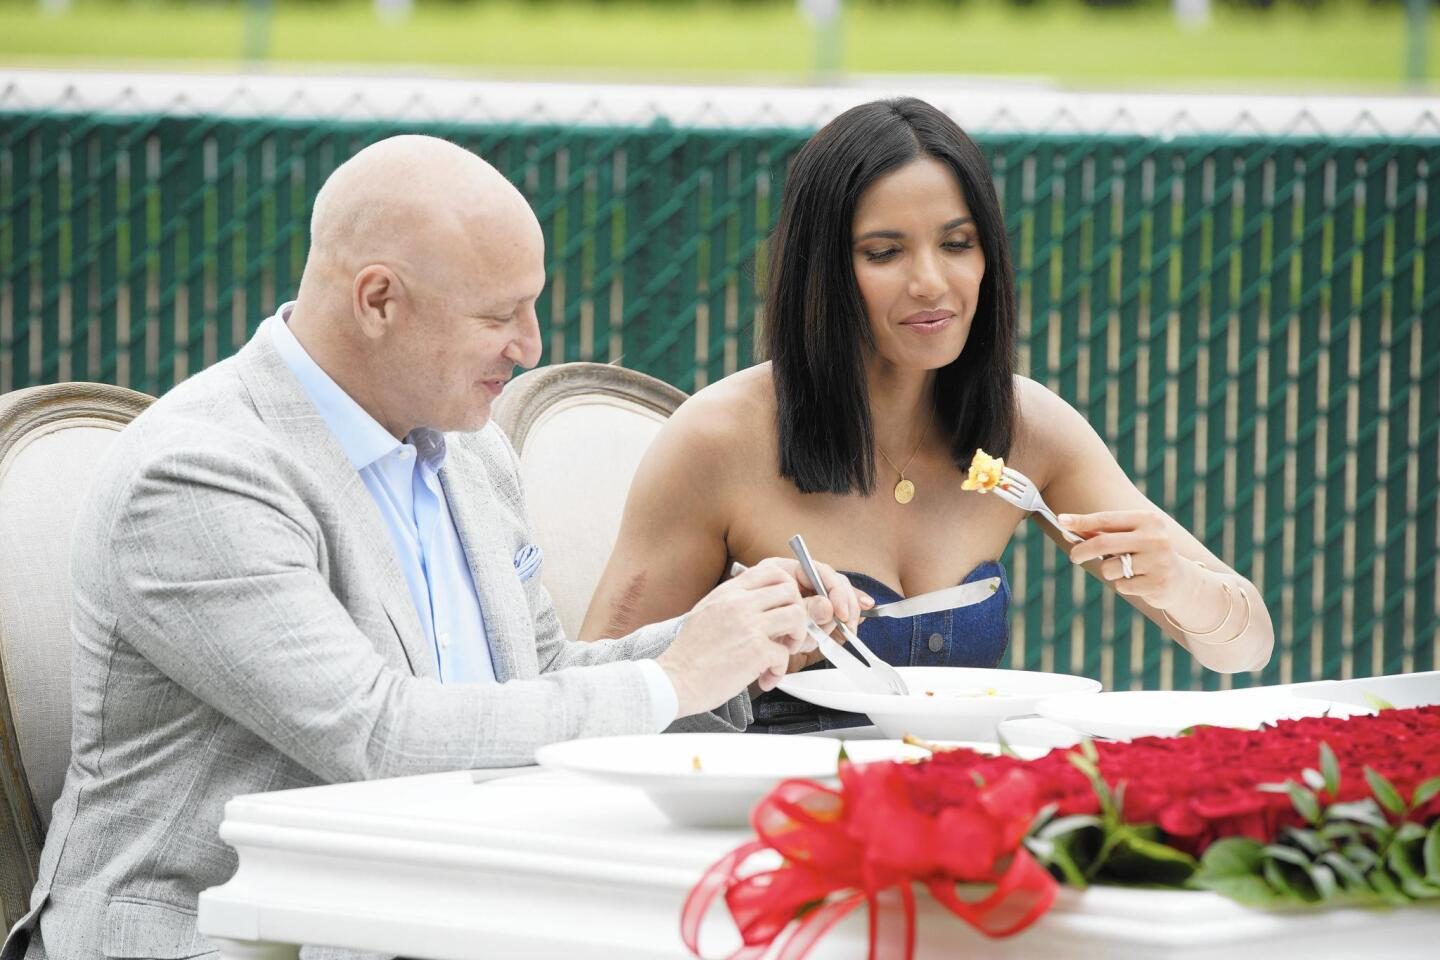 """""""Top Chef"""" head judge Tom Colicchio and host Padma Lakshmi dig into contestants' food at Churchill Downs in the season premiere of the Bravo cooking competition, airing Dec. 6."""